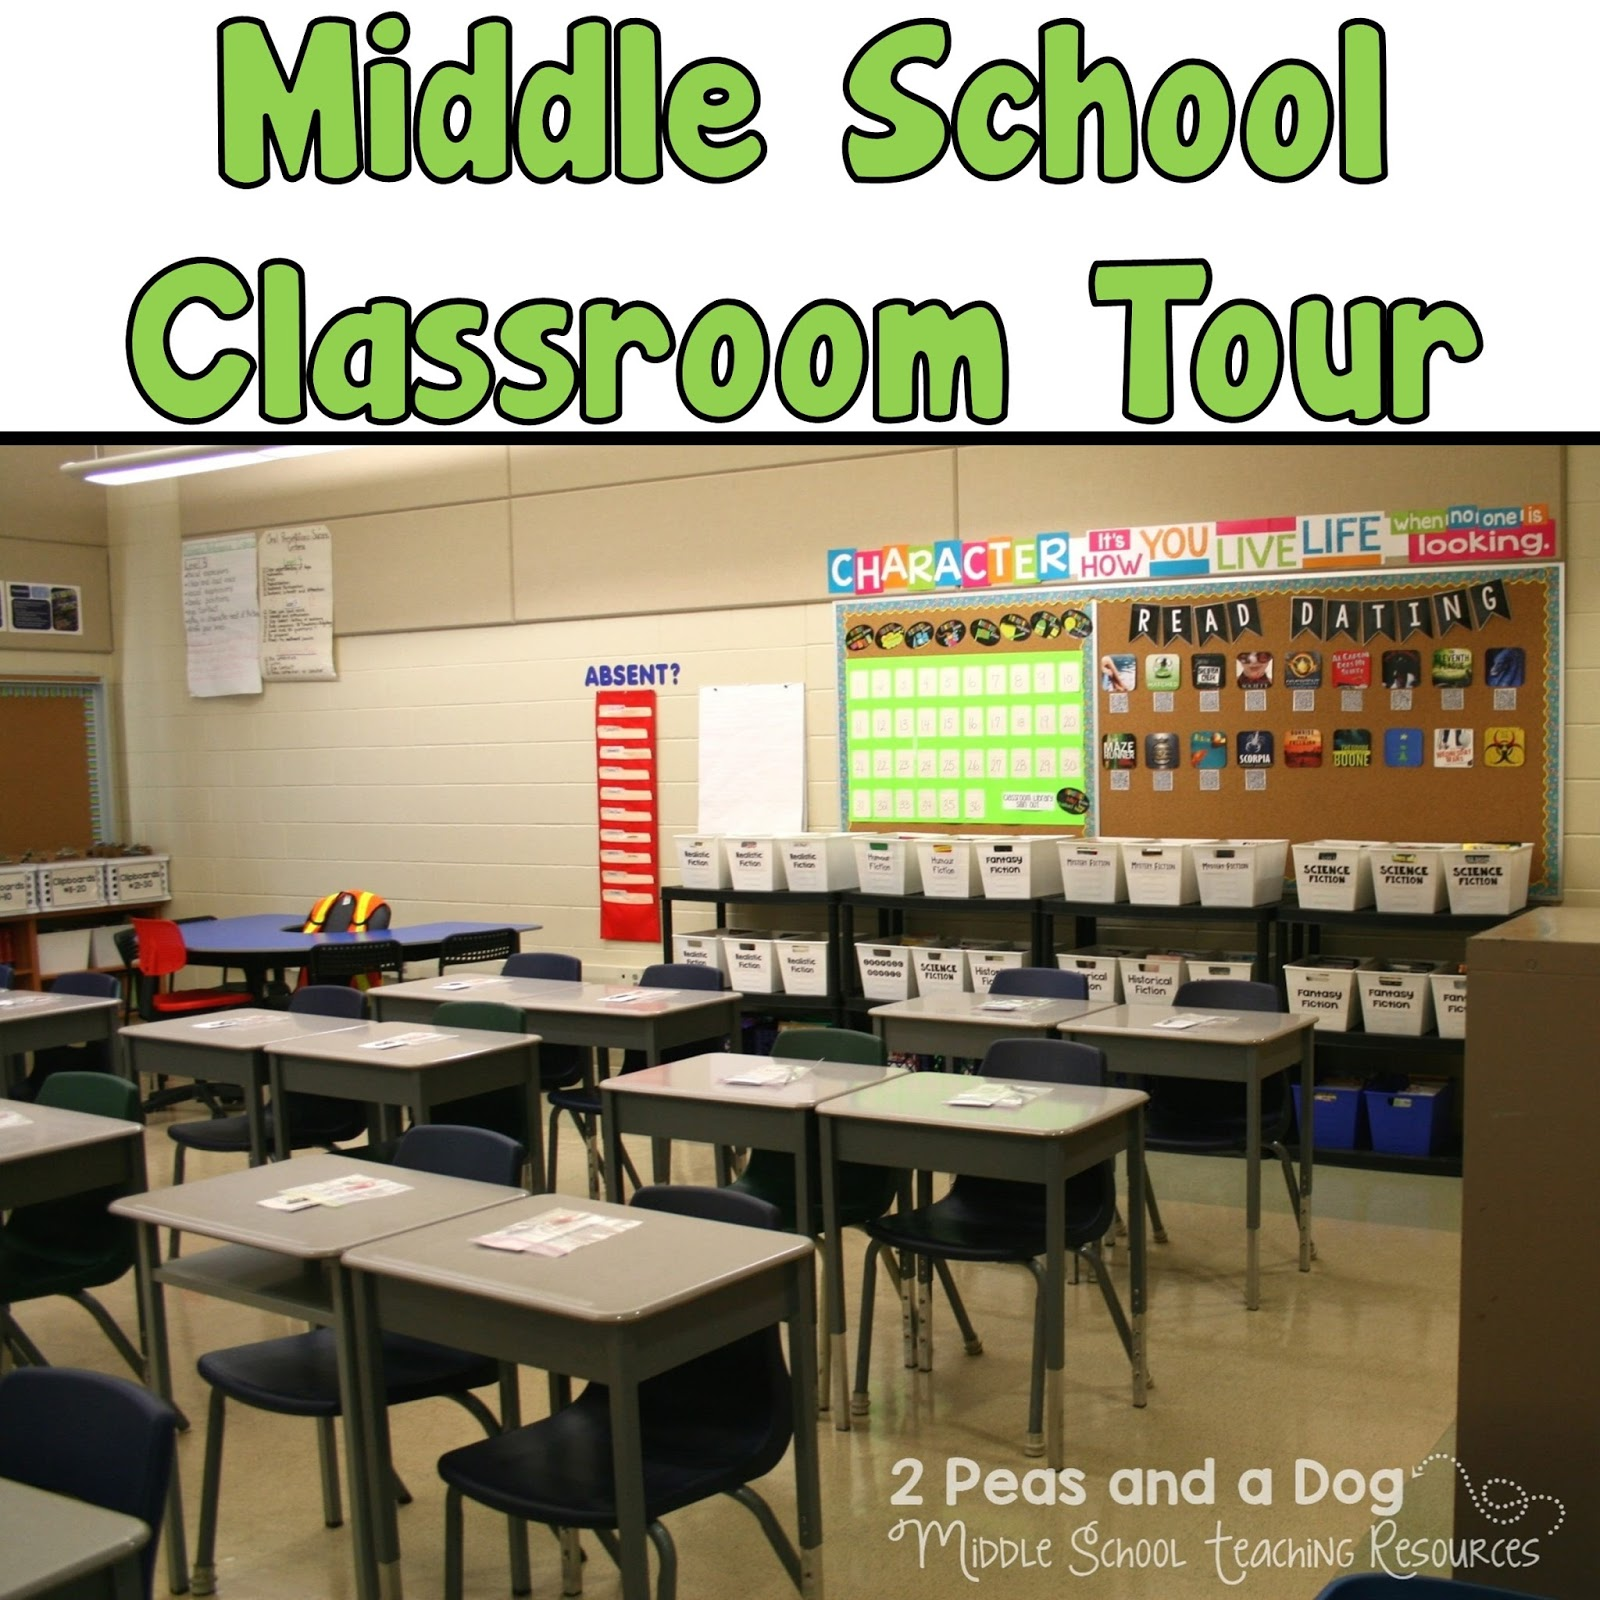 Classroom Design Middle School ~ Middle school classroom set up ideas peas and a dog